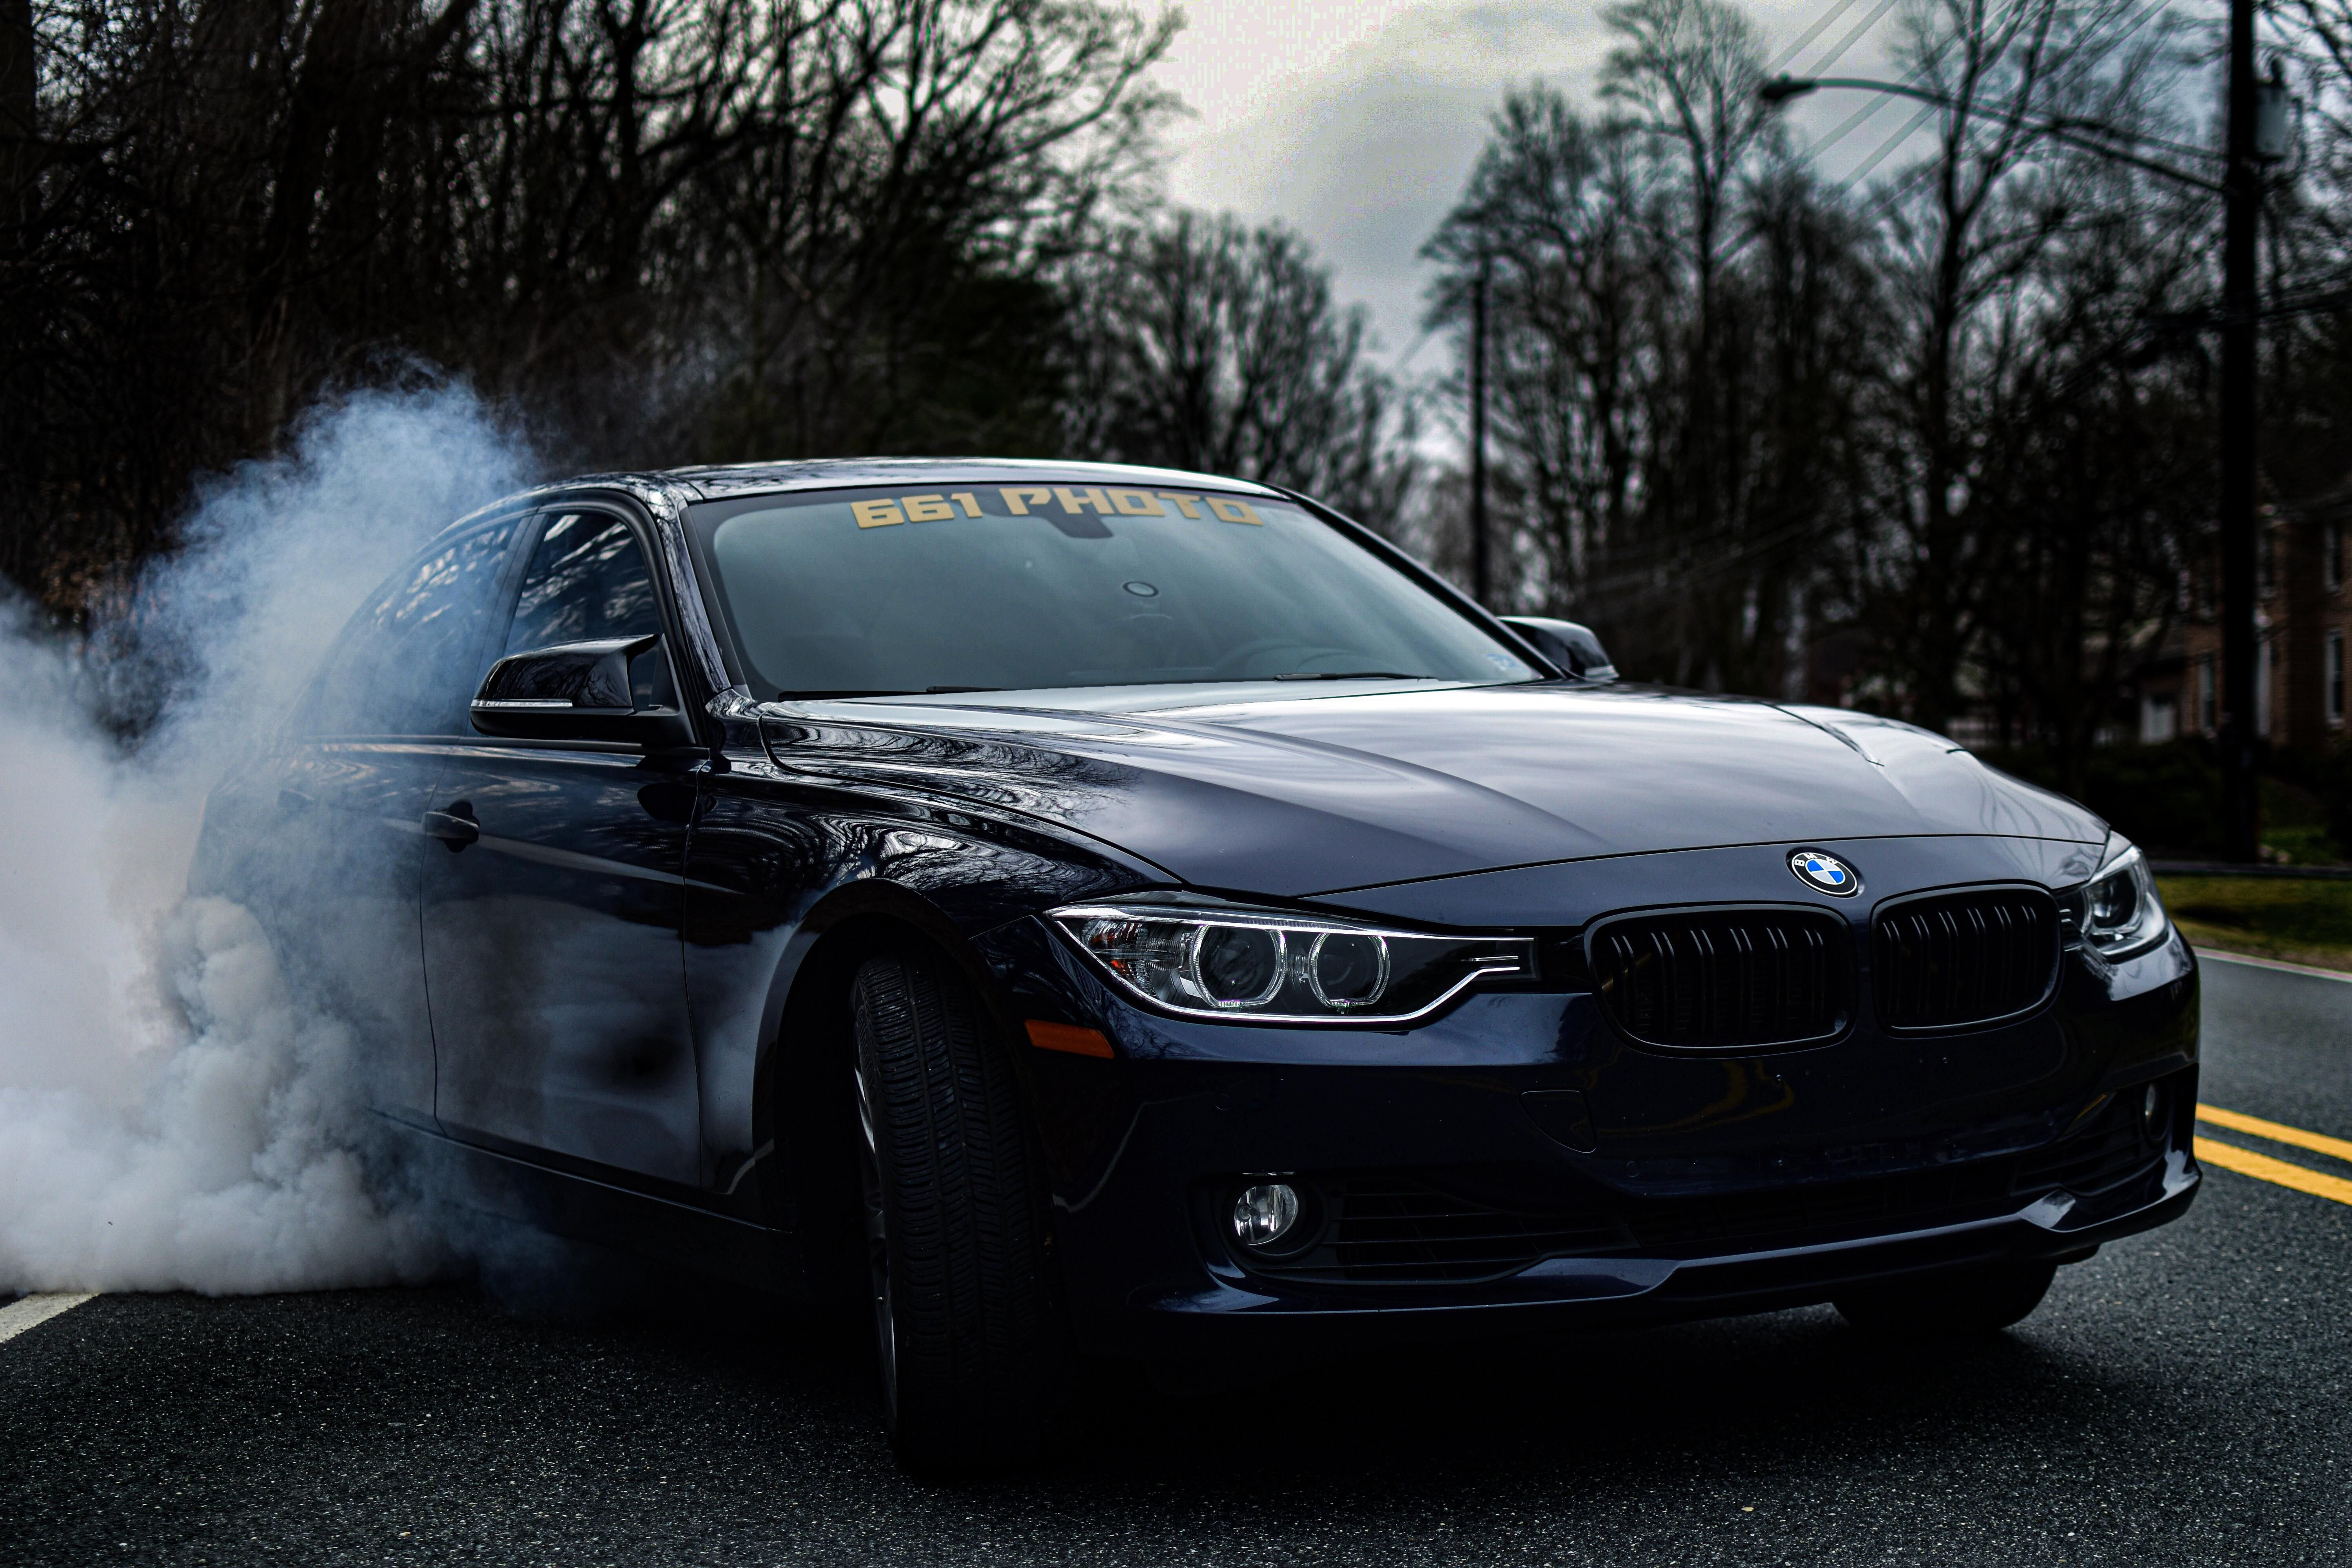 My Imperial Blue 335i In 2020 With Images Bmw Bmw Love Imperial